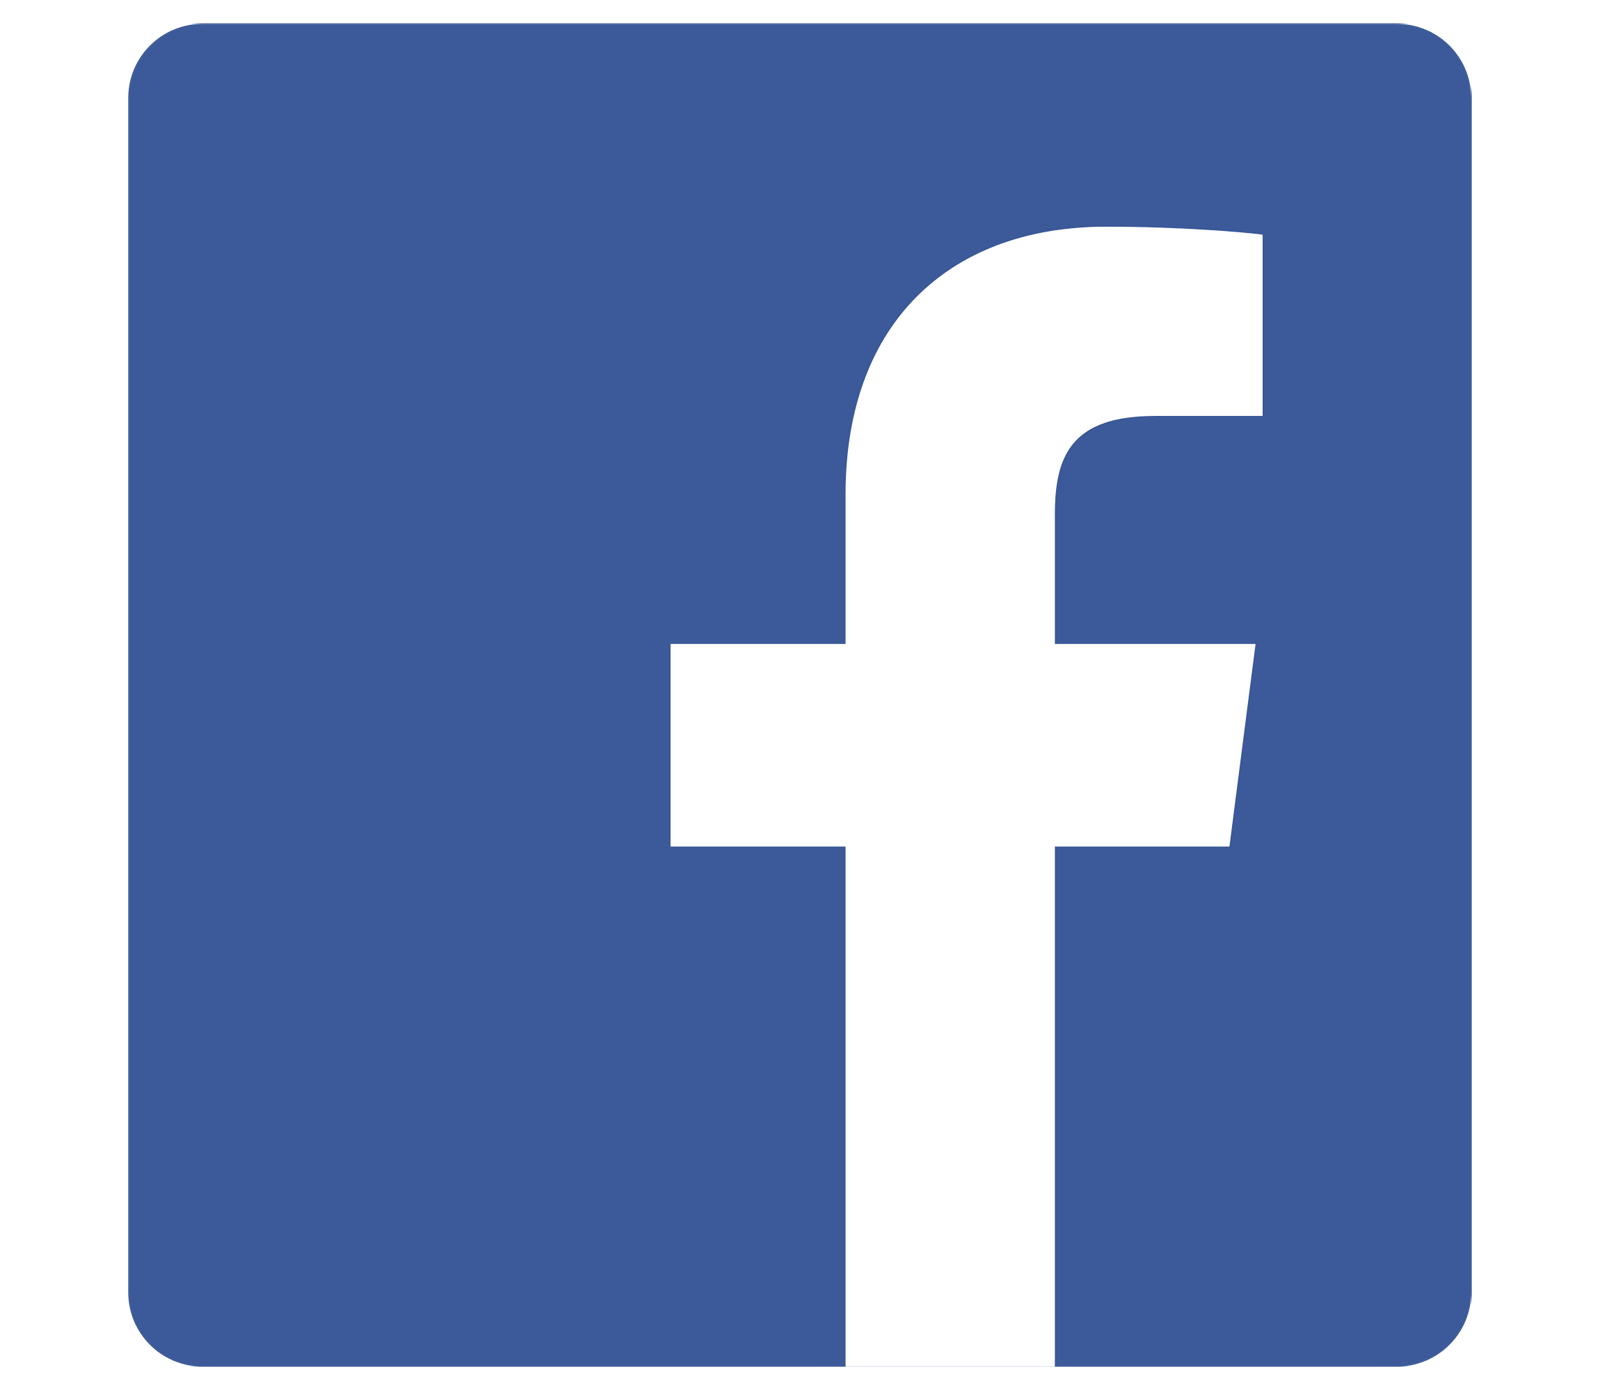 logo facebook transparent